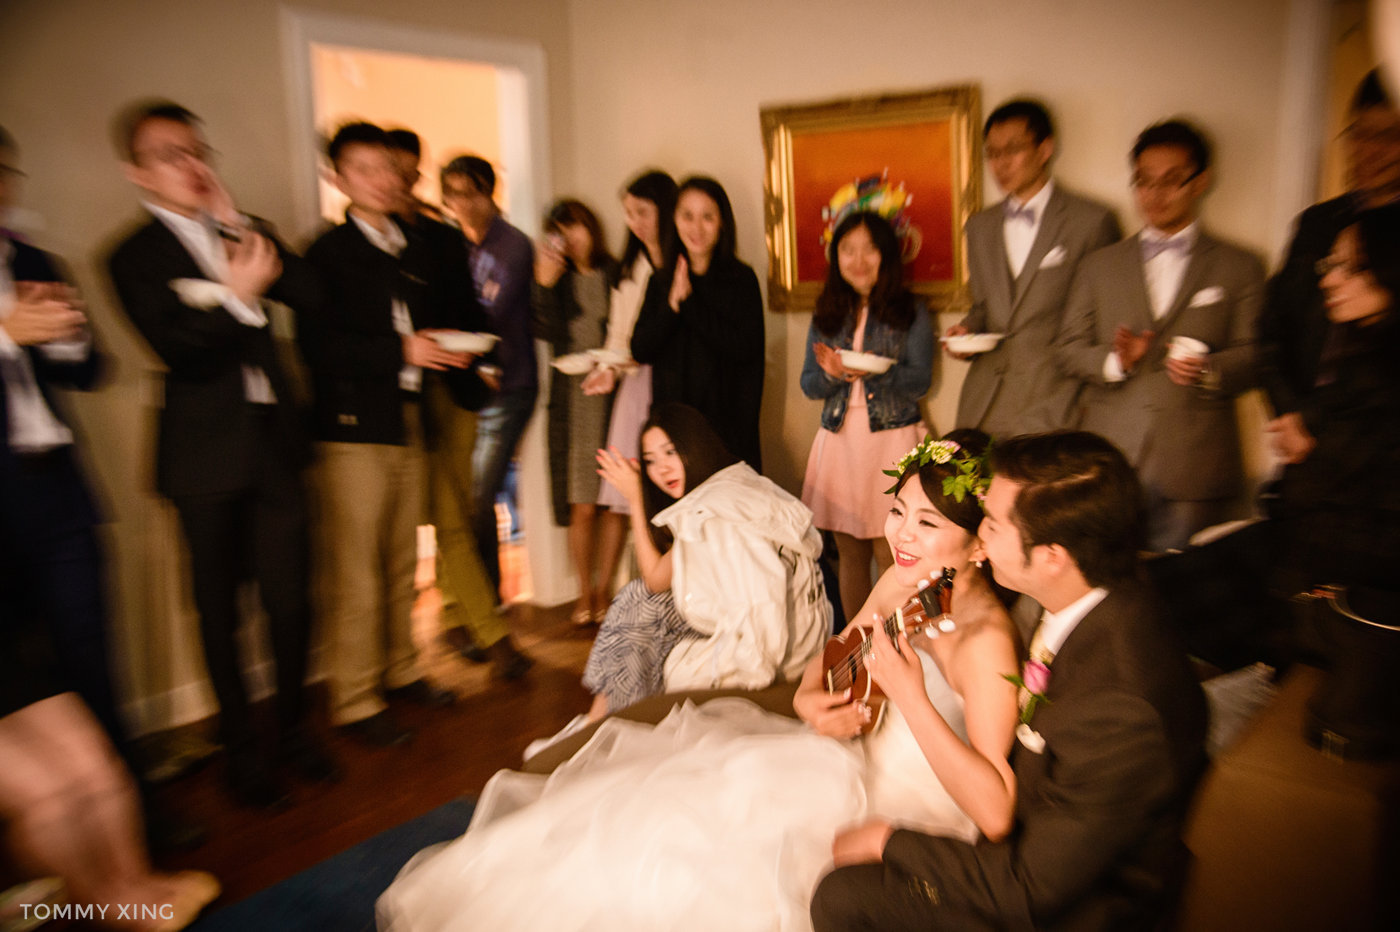 Seattle Wedding and pre wedding Los Angeles Tommy Xing Photography 西雅图洛杉矶旧金山婚礼婚纱照摄影师 152.jpg